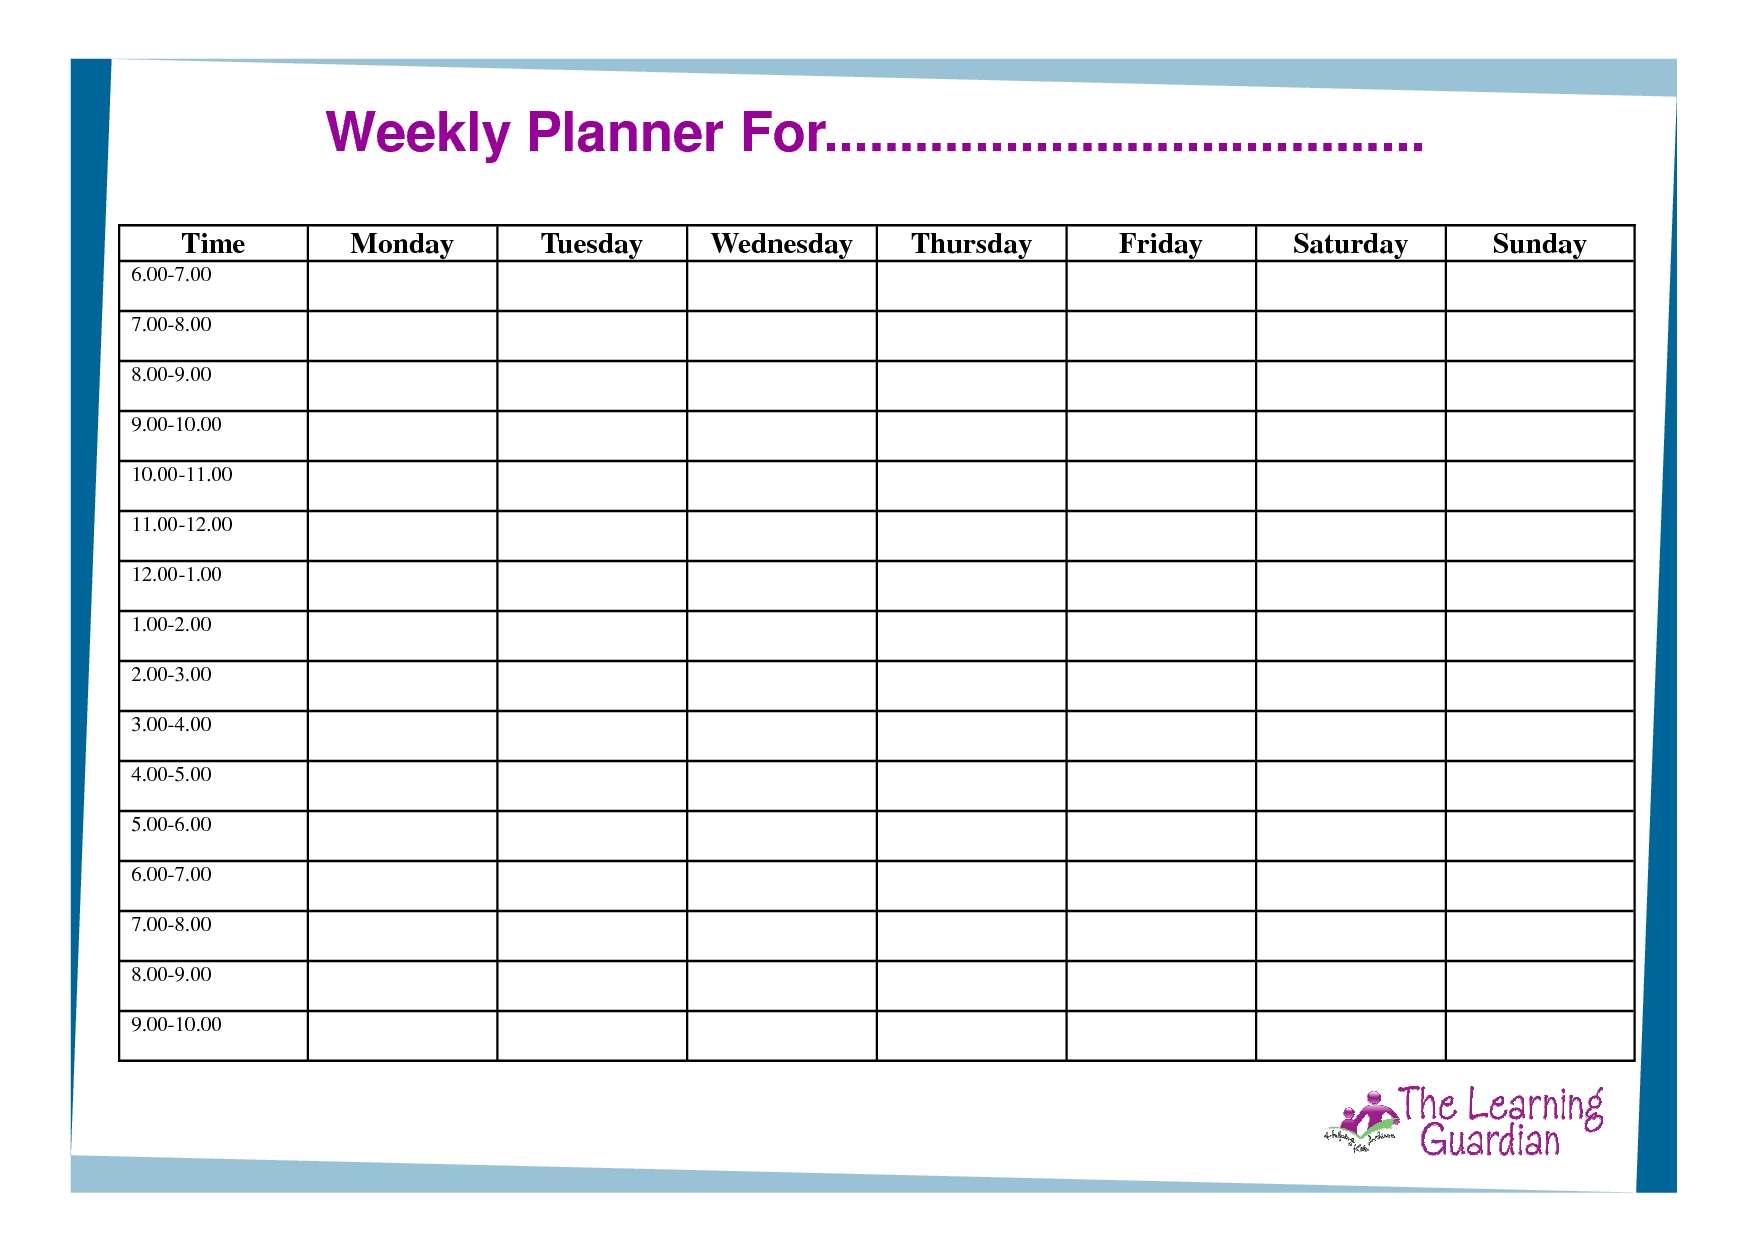 Free Printable Weekly Calendar Templates | Weekly Planner-Monday Through Friday Schedule Template